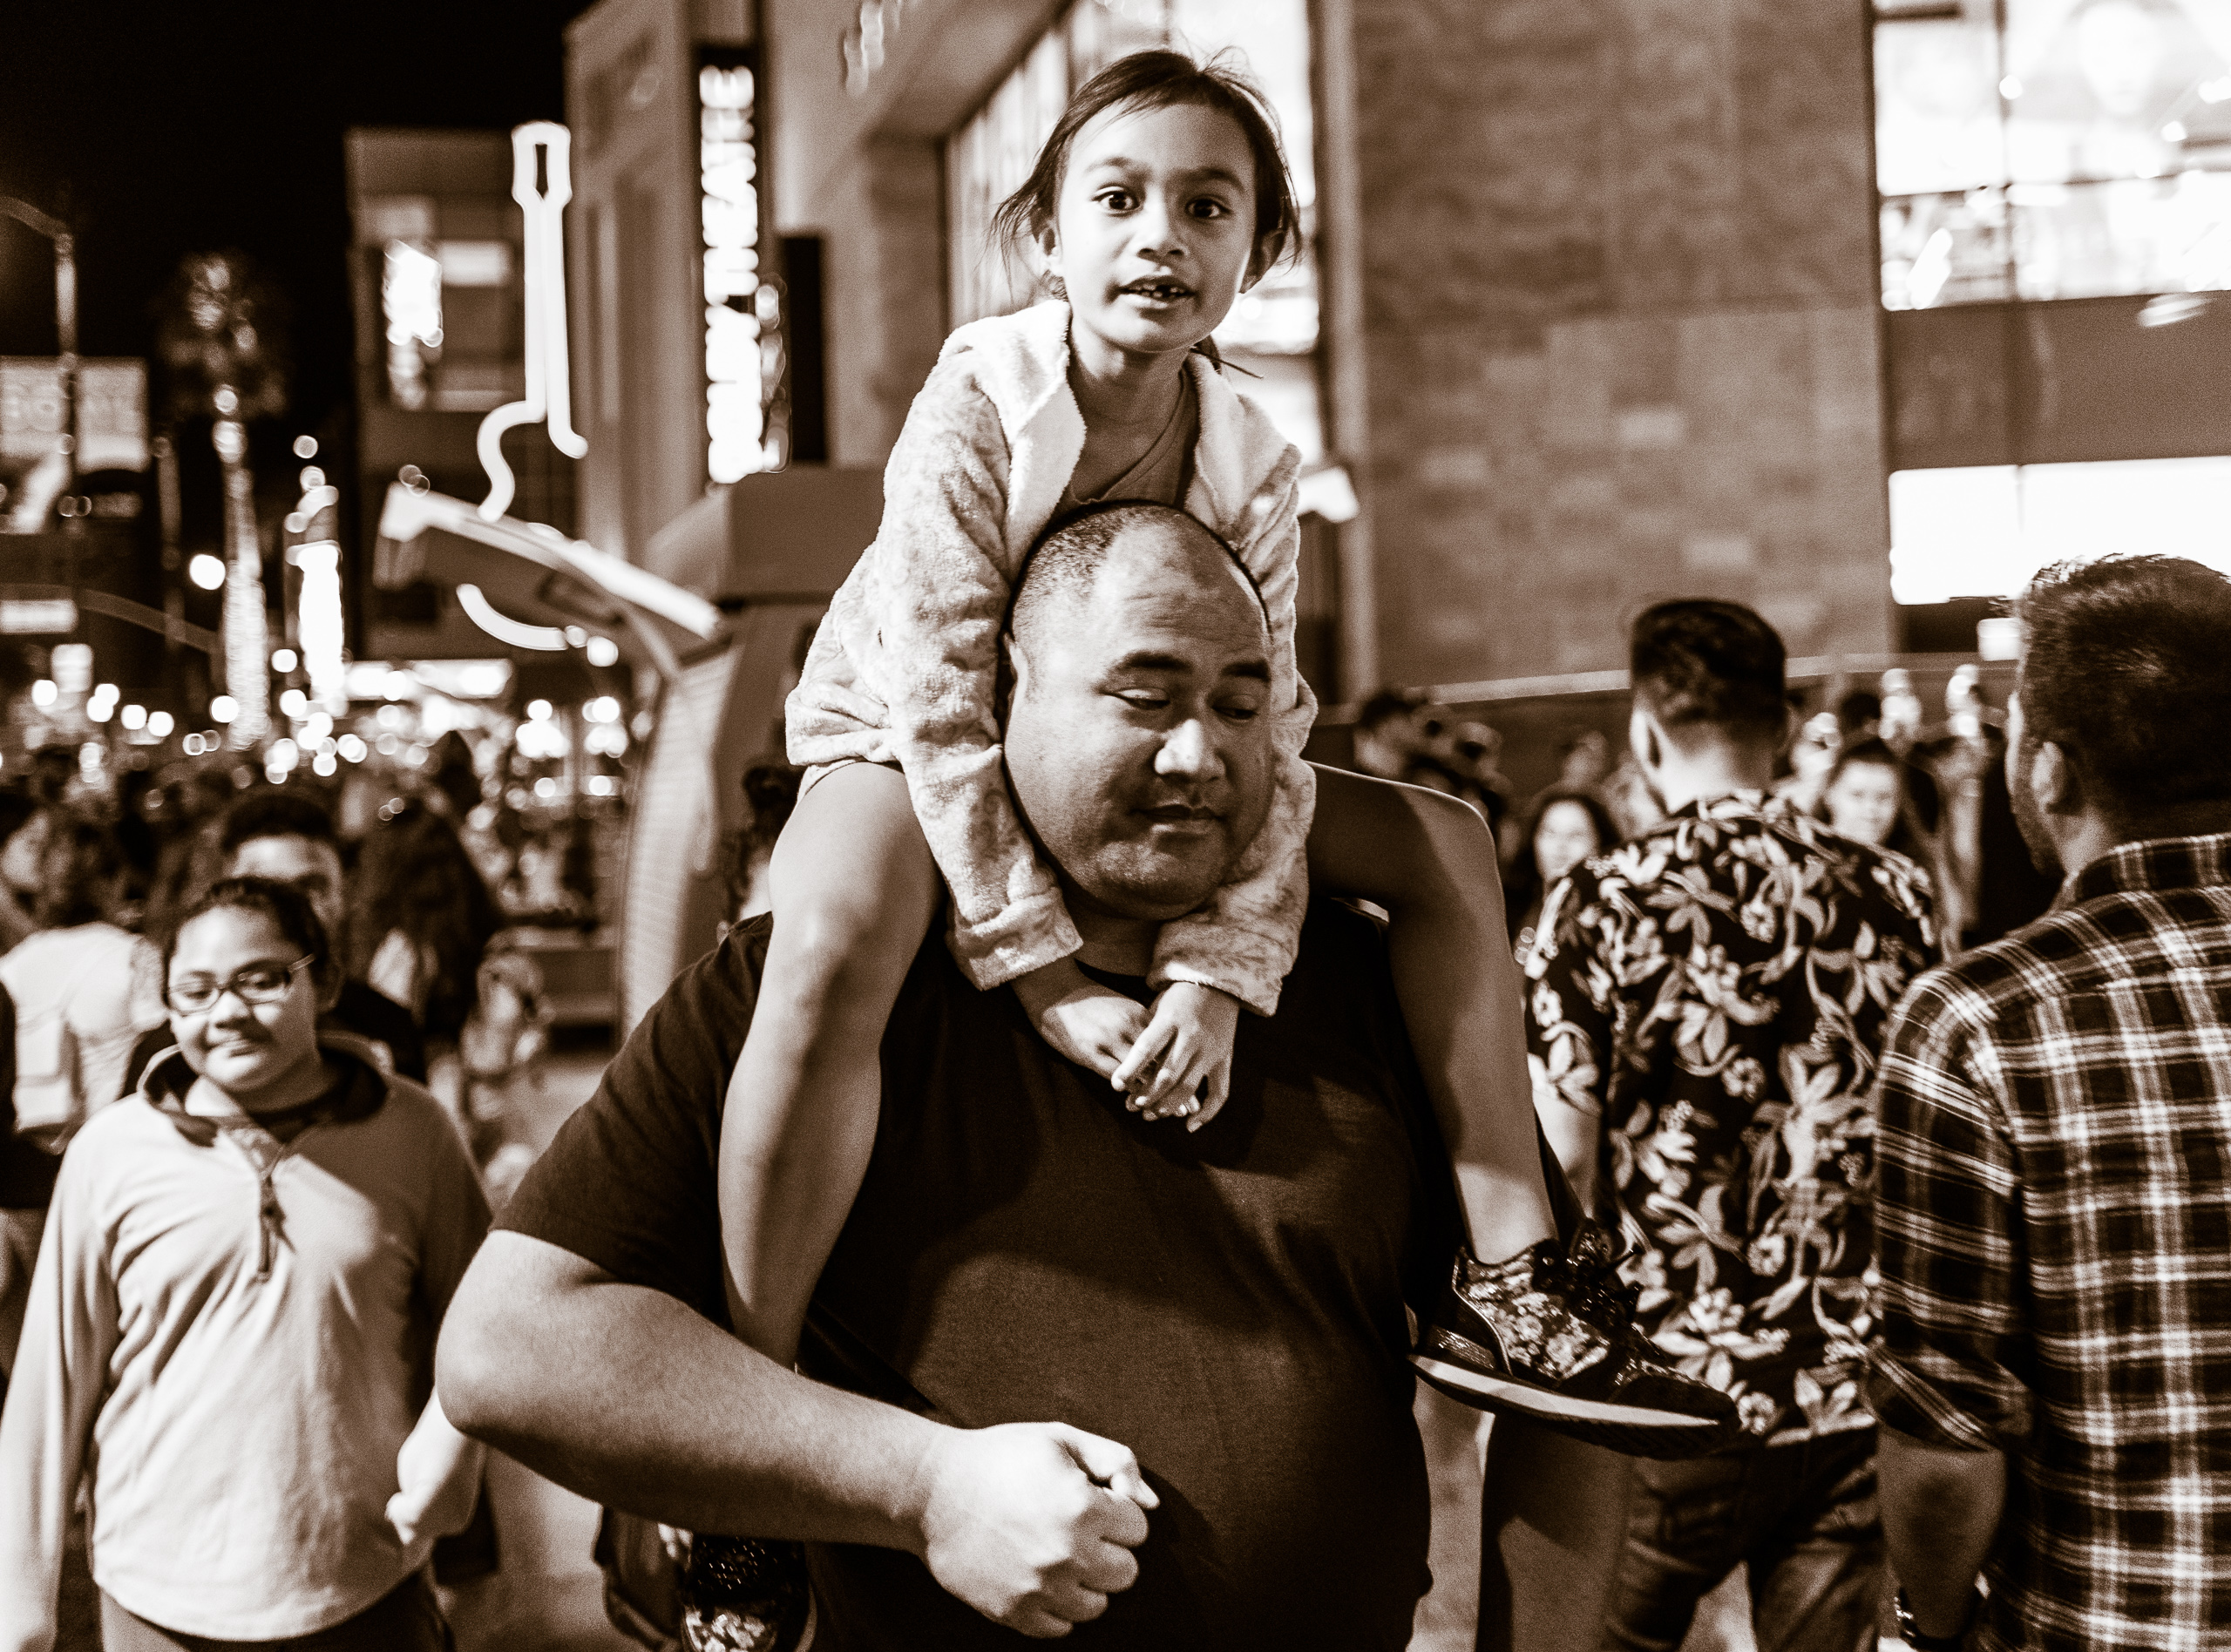 a tiny young girl rides on the shoulders of her big father